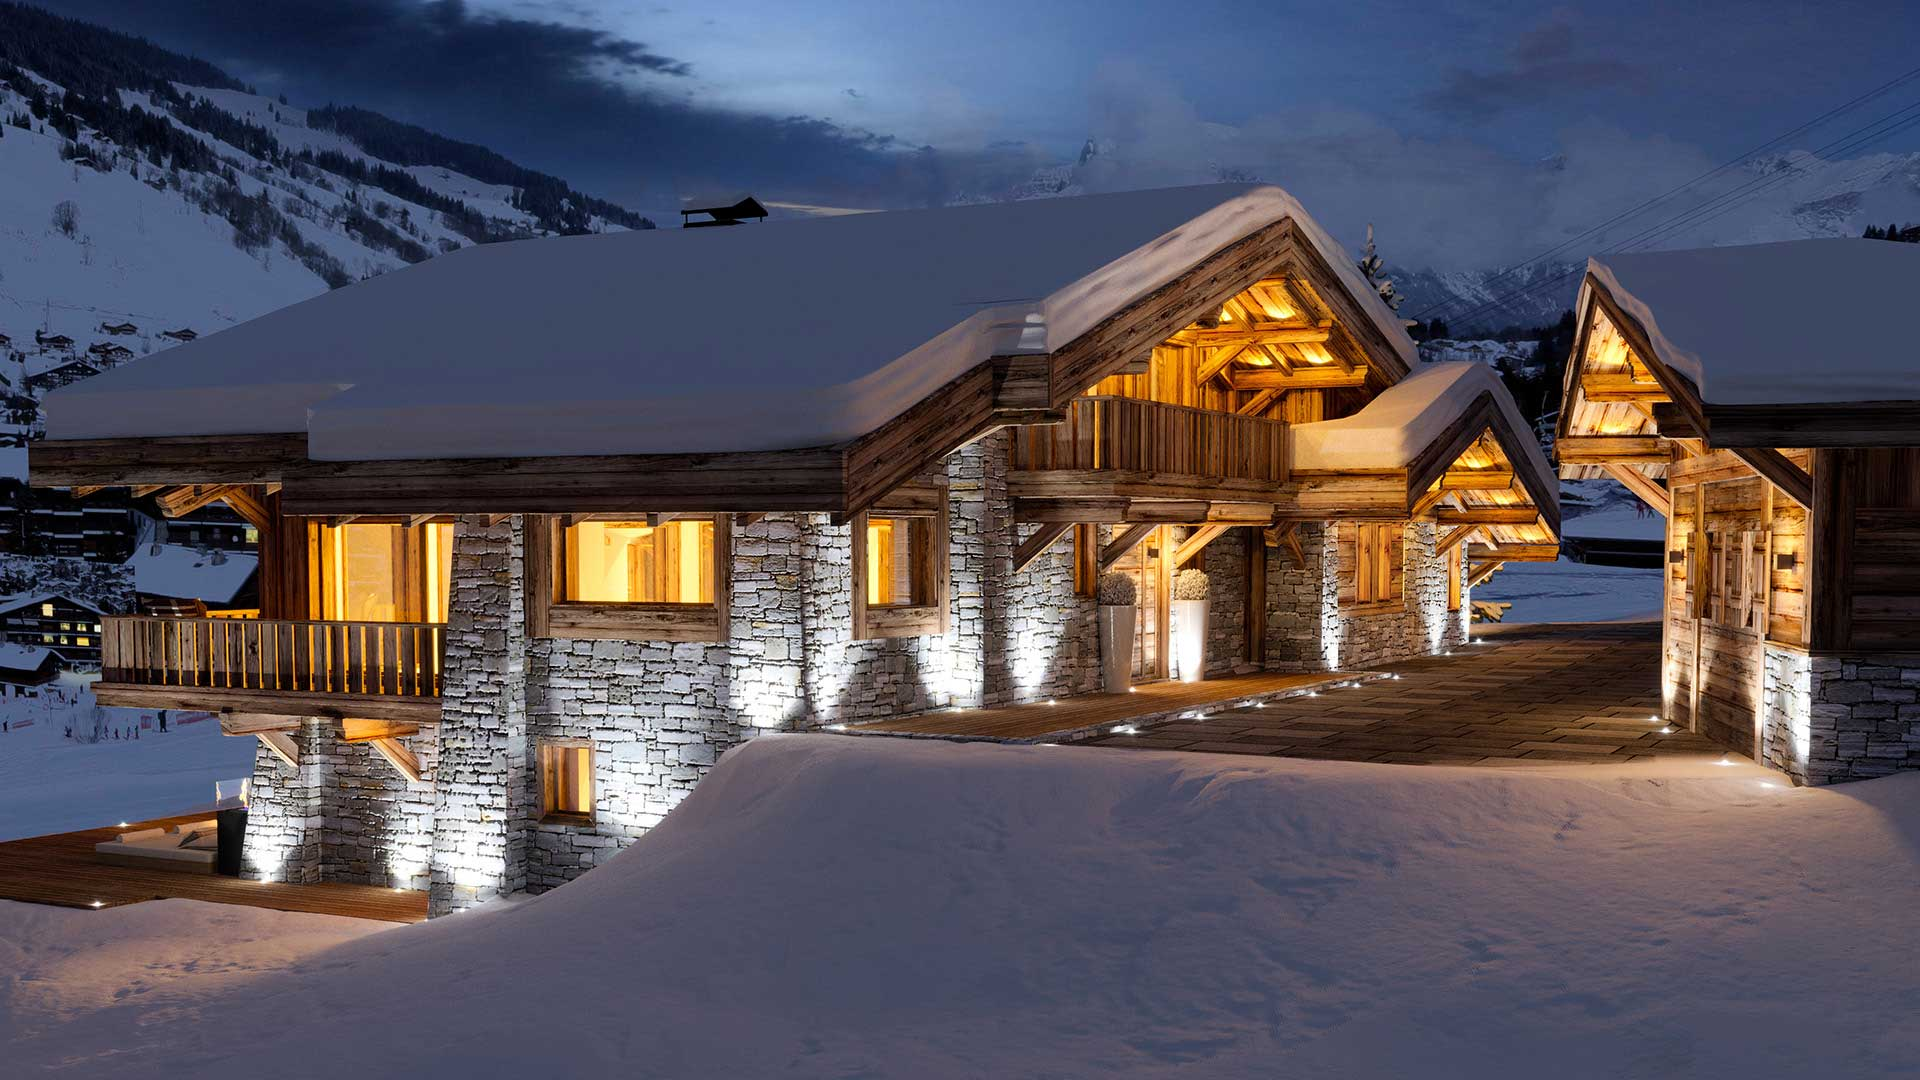 3D Rendering of a view of a chalet in the mountains at night made from computer generated images.